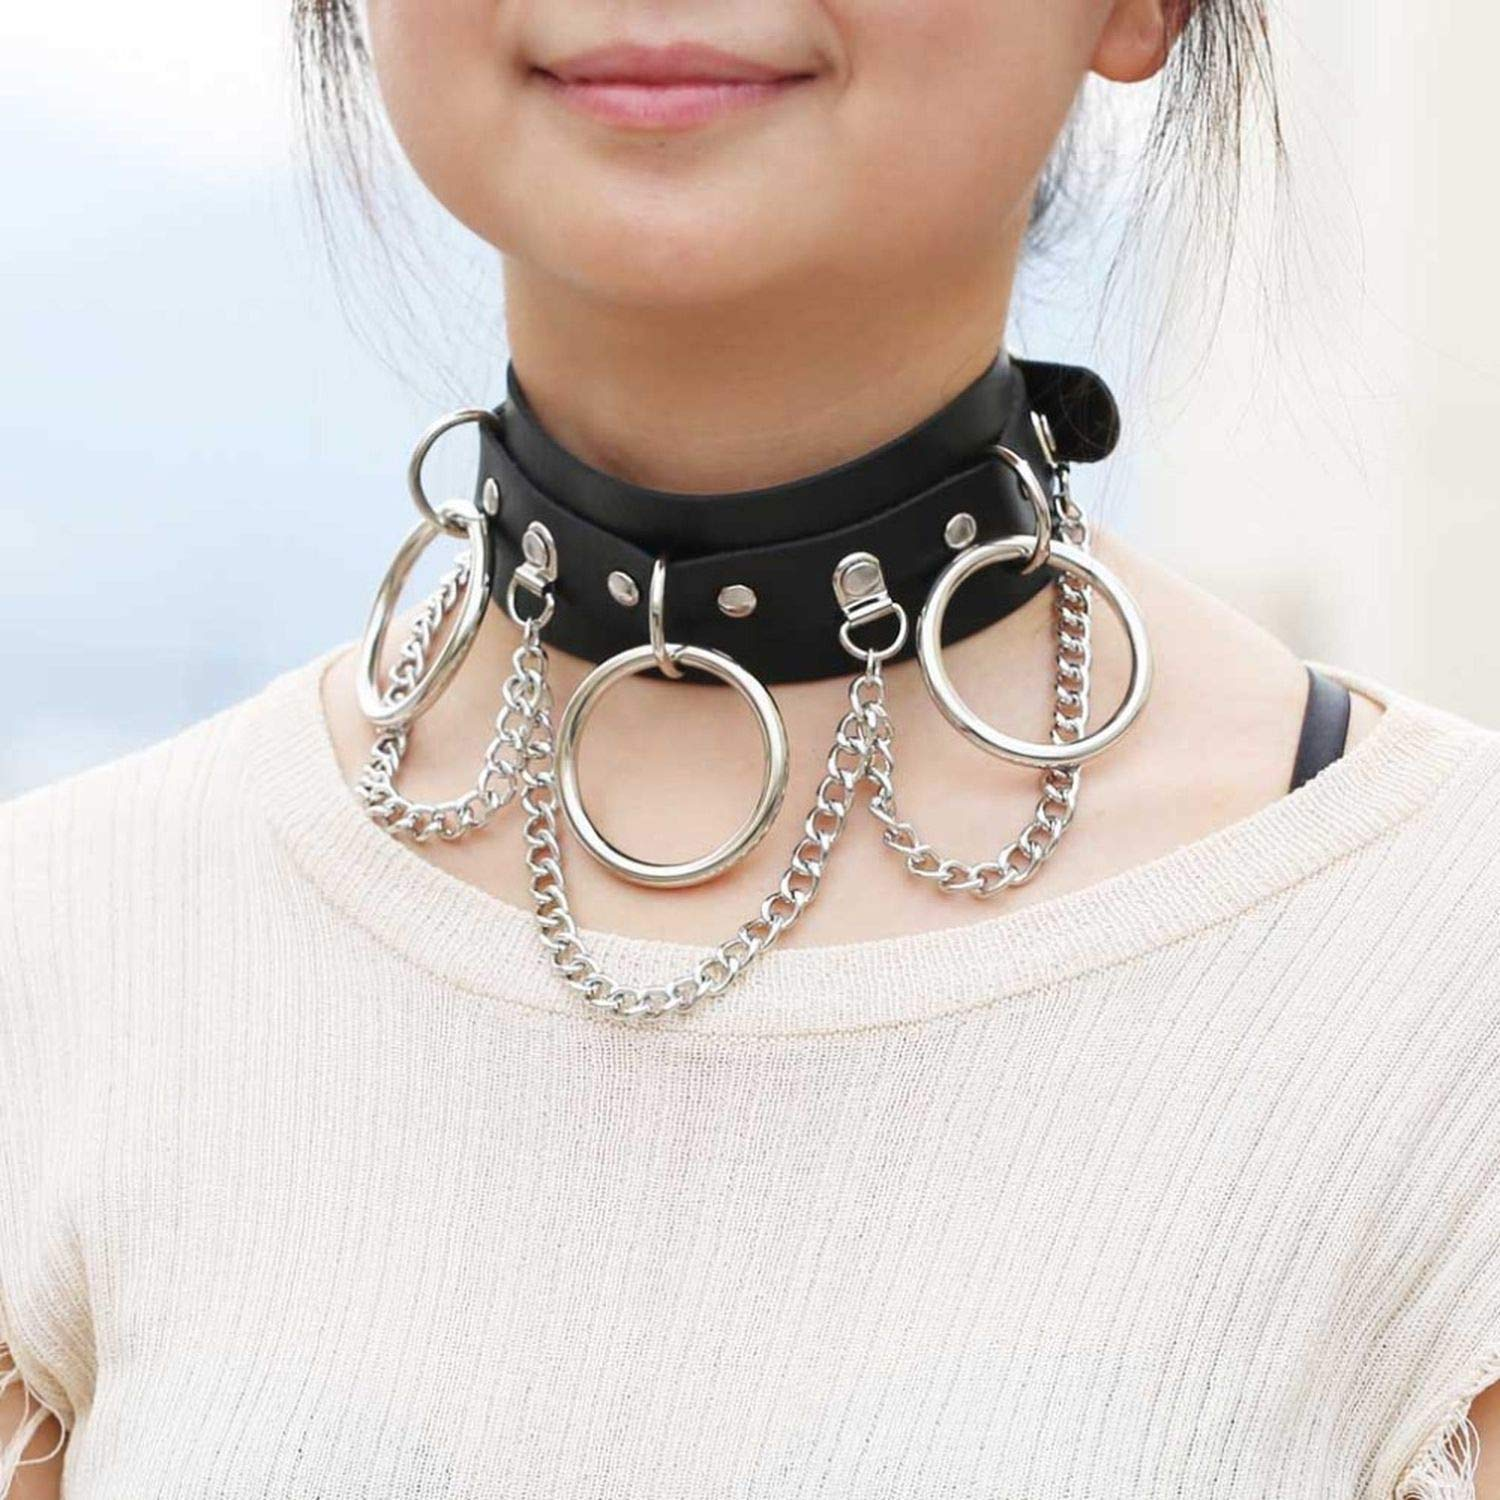 39e137e31e20d Tianshui Store Sexy Choker Punk Goth Collar Chain Belt Necklace Pu Leather  Chocker Bondage Cosplay Club Party Jewelry